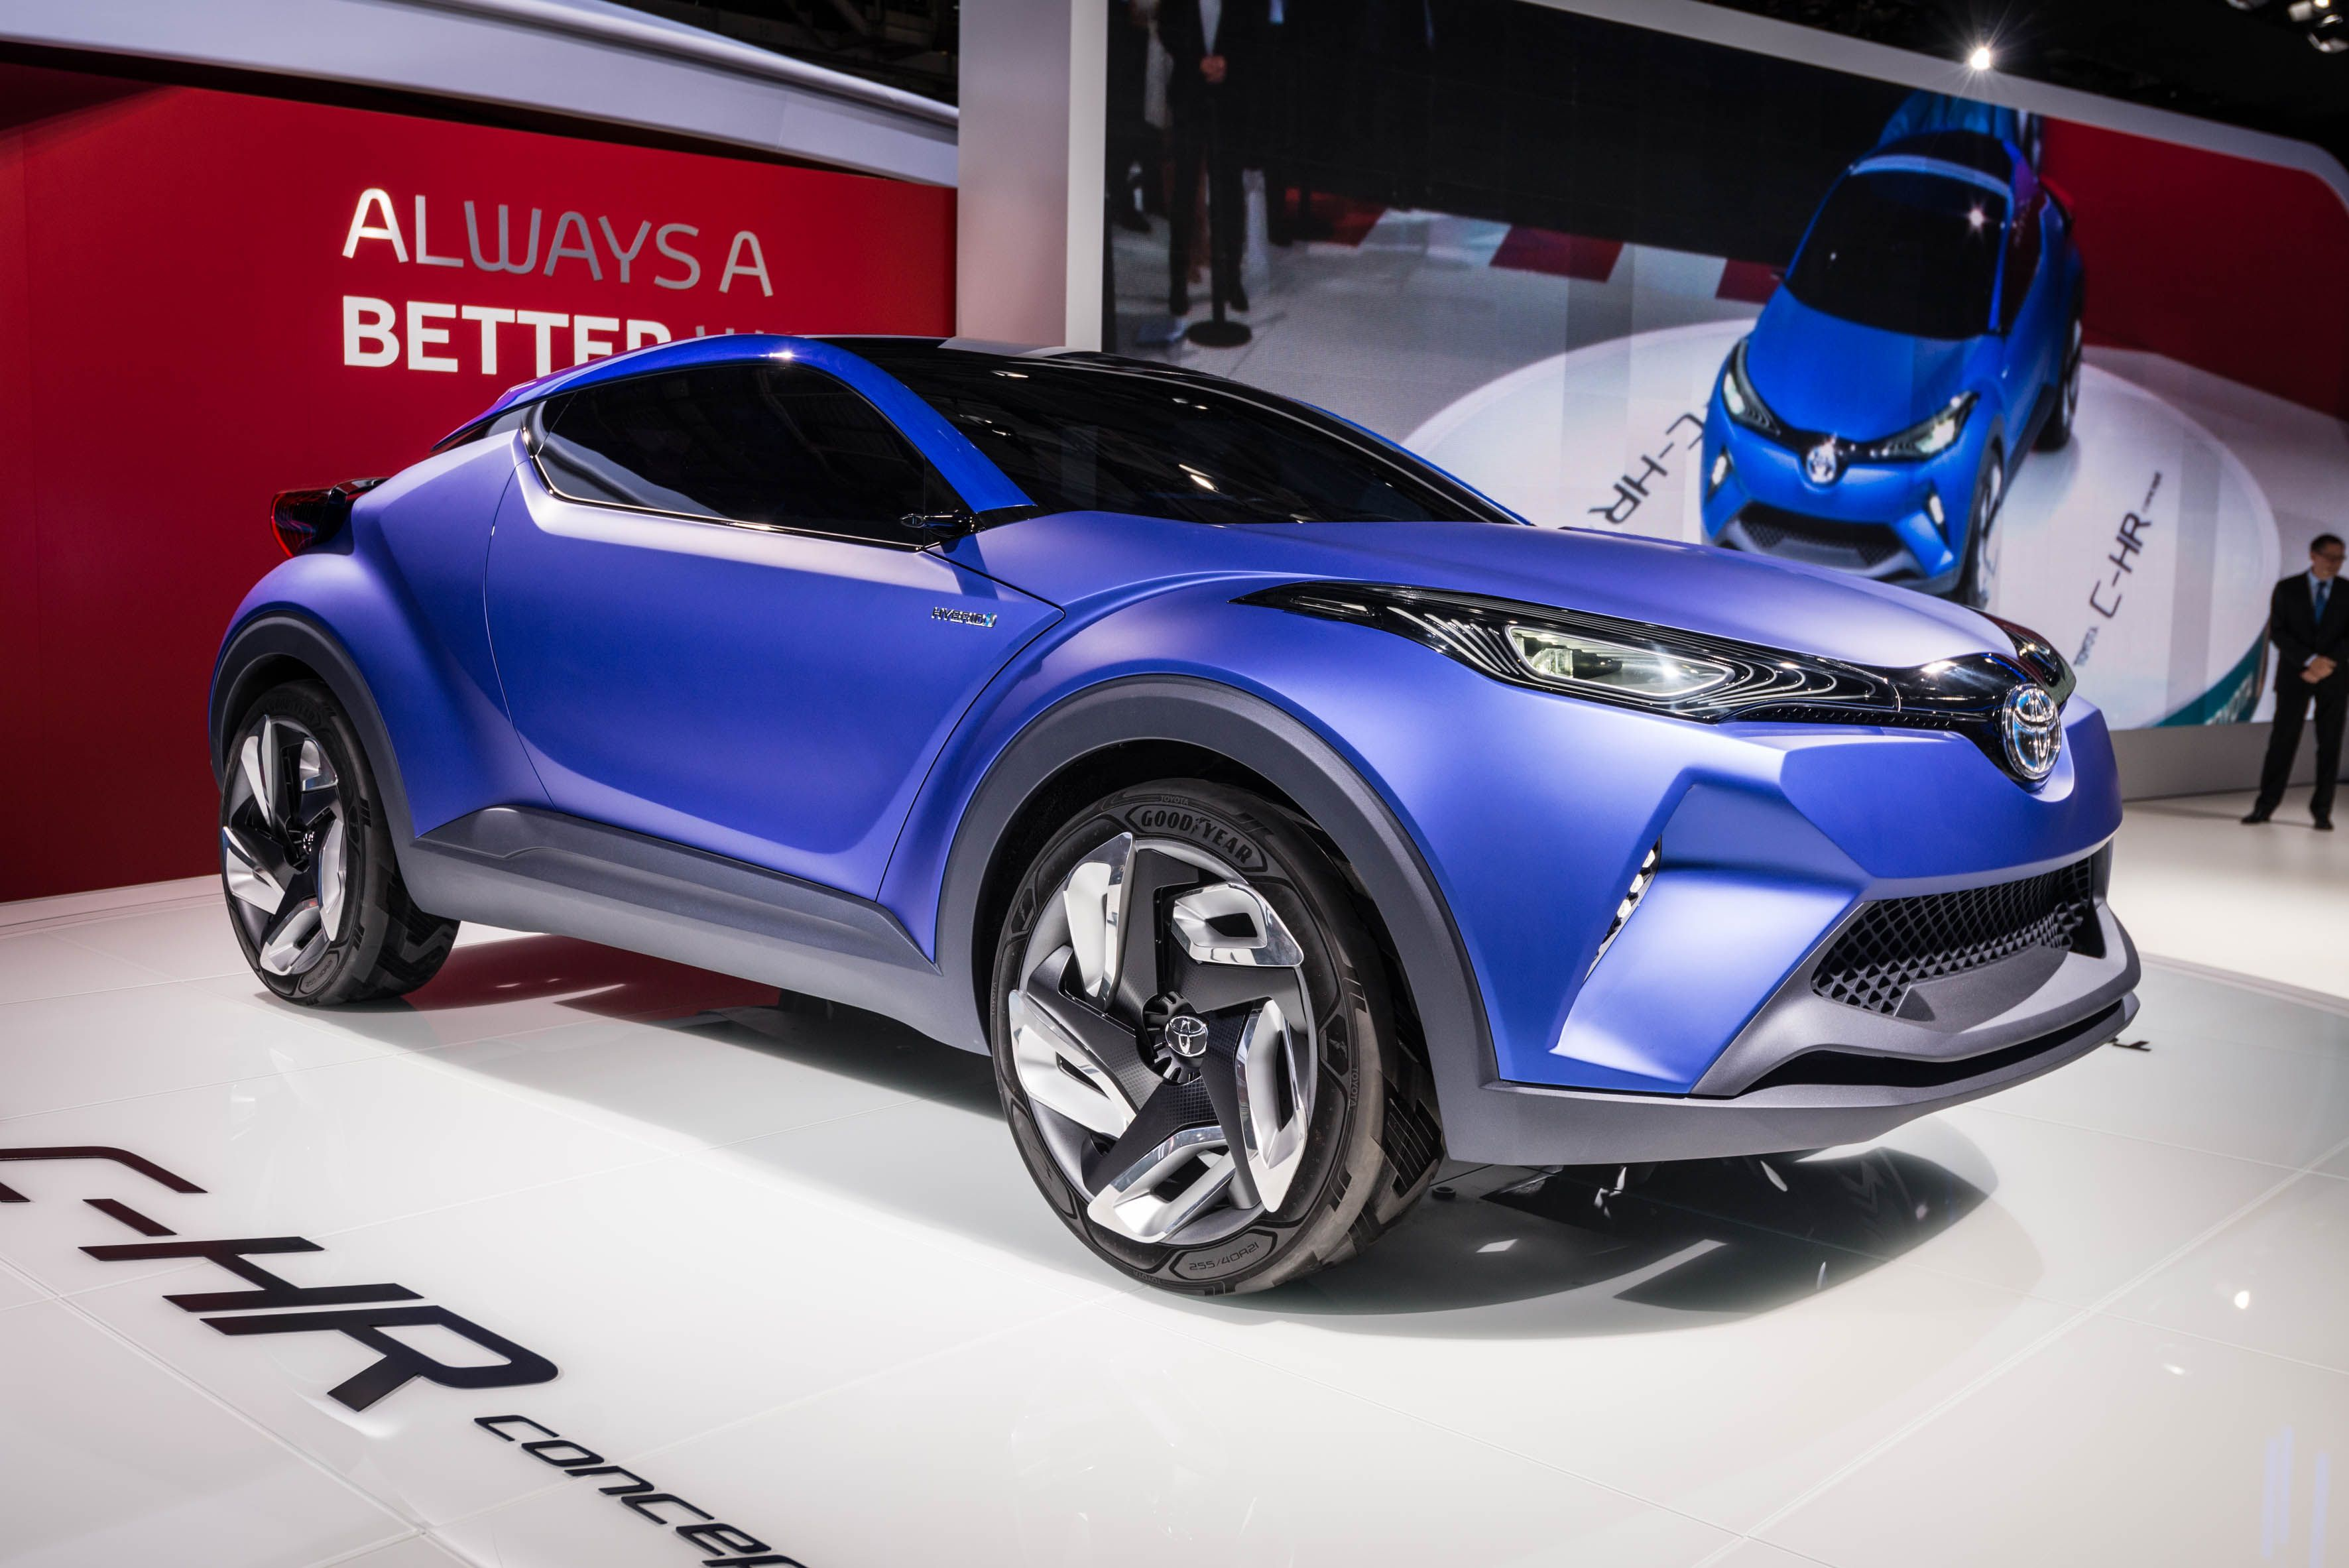 Car seating capacity compact crossover cars toyota cars toyota chr - Toyota Has Unveiled A New Concept Car At The 2014 Paris Motor Show Called The C Hr Concept